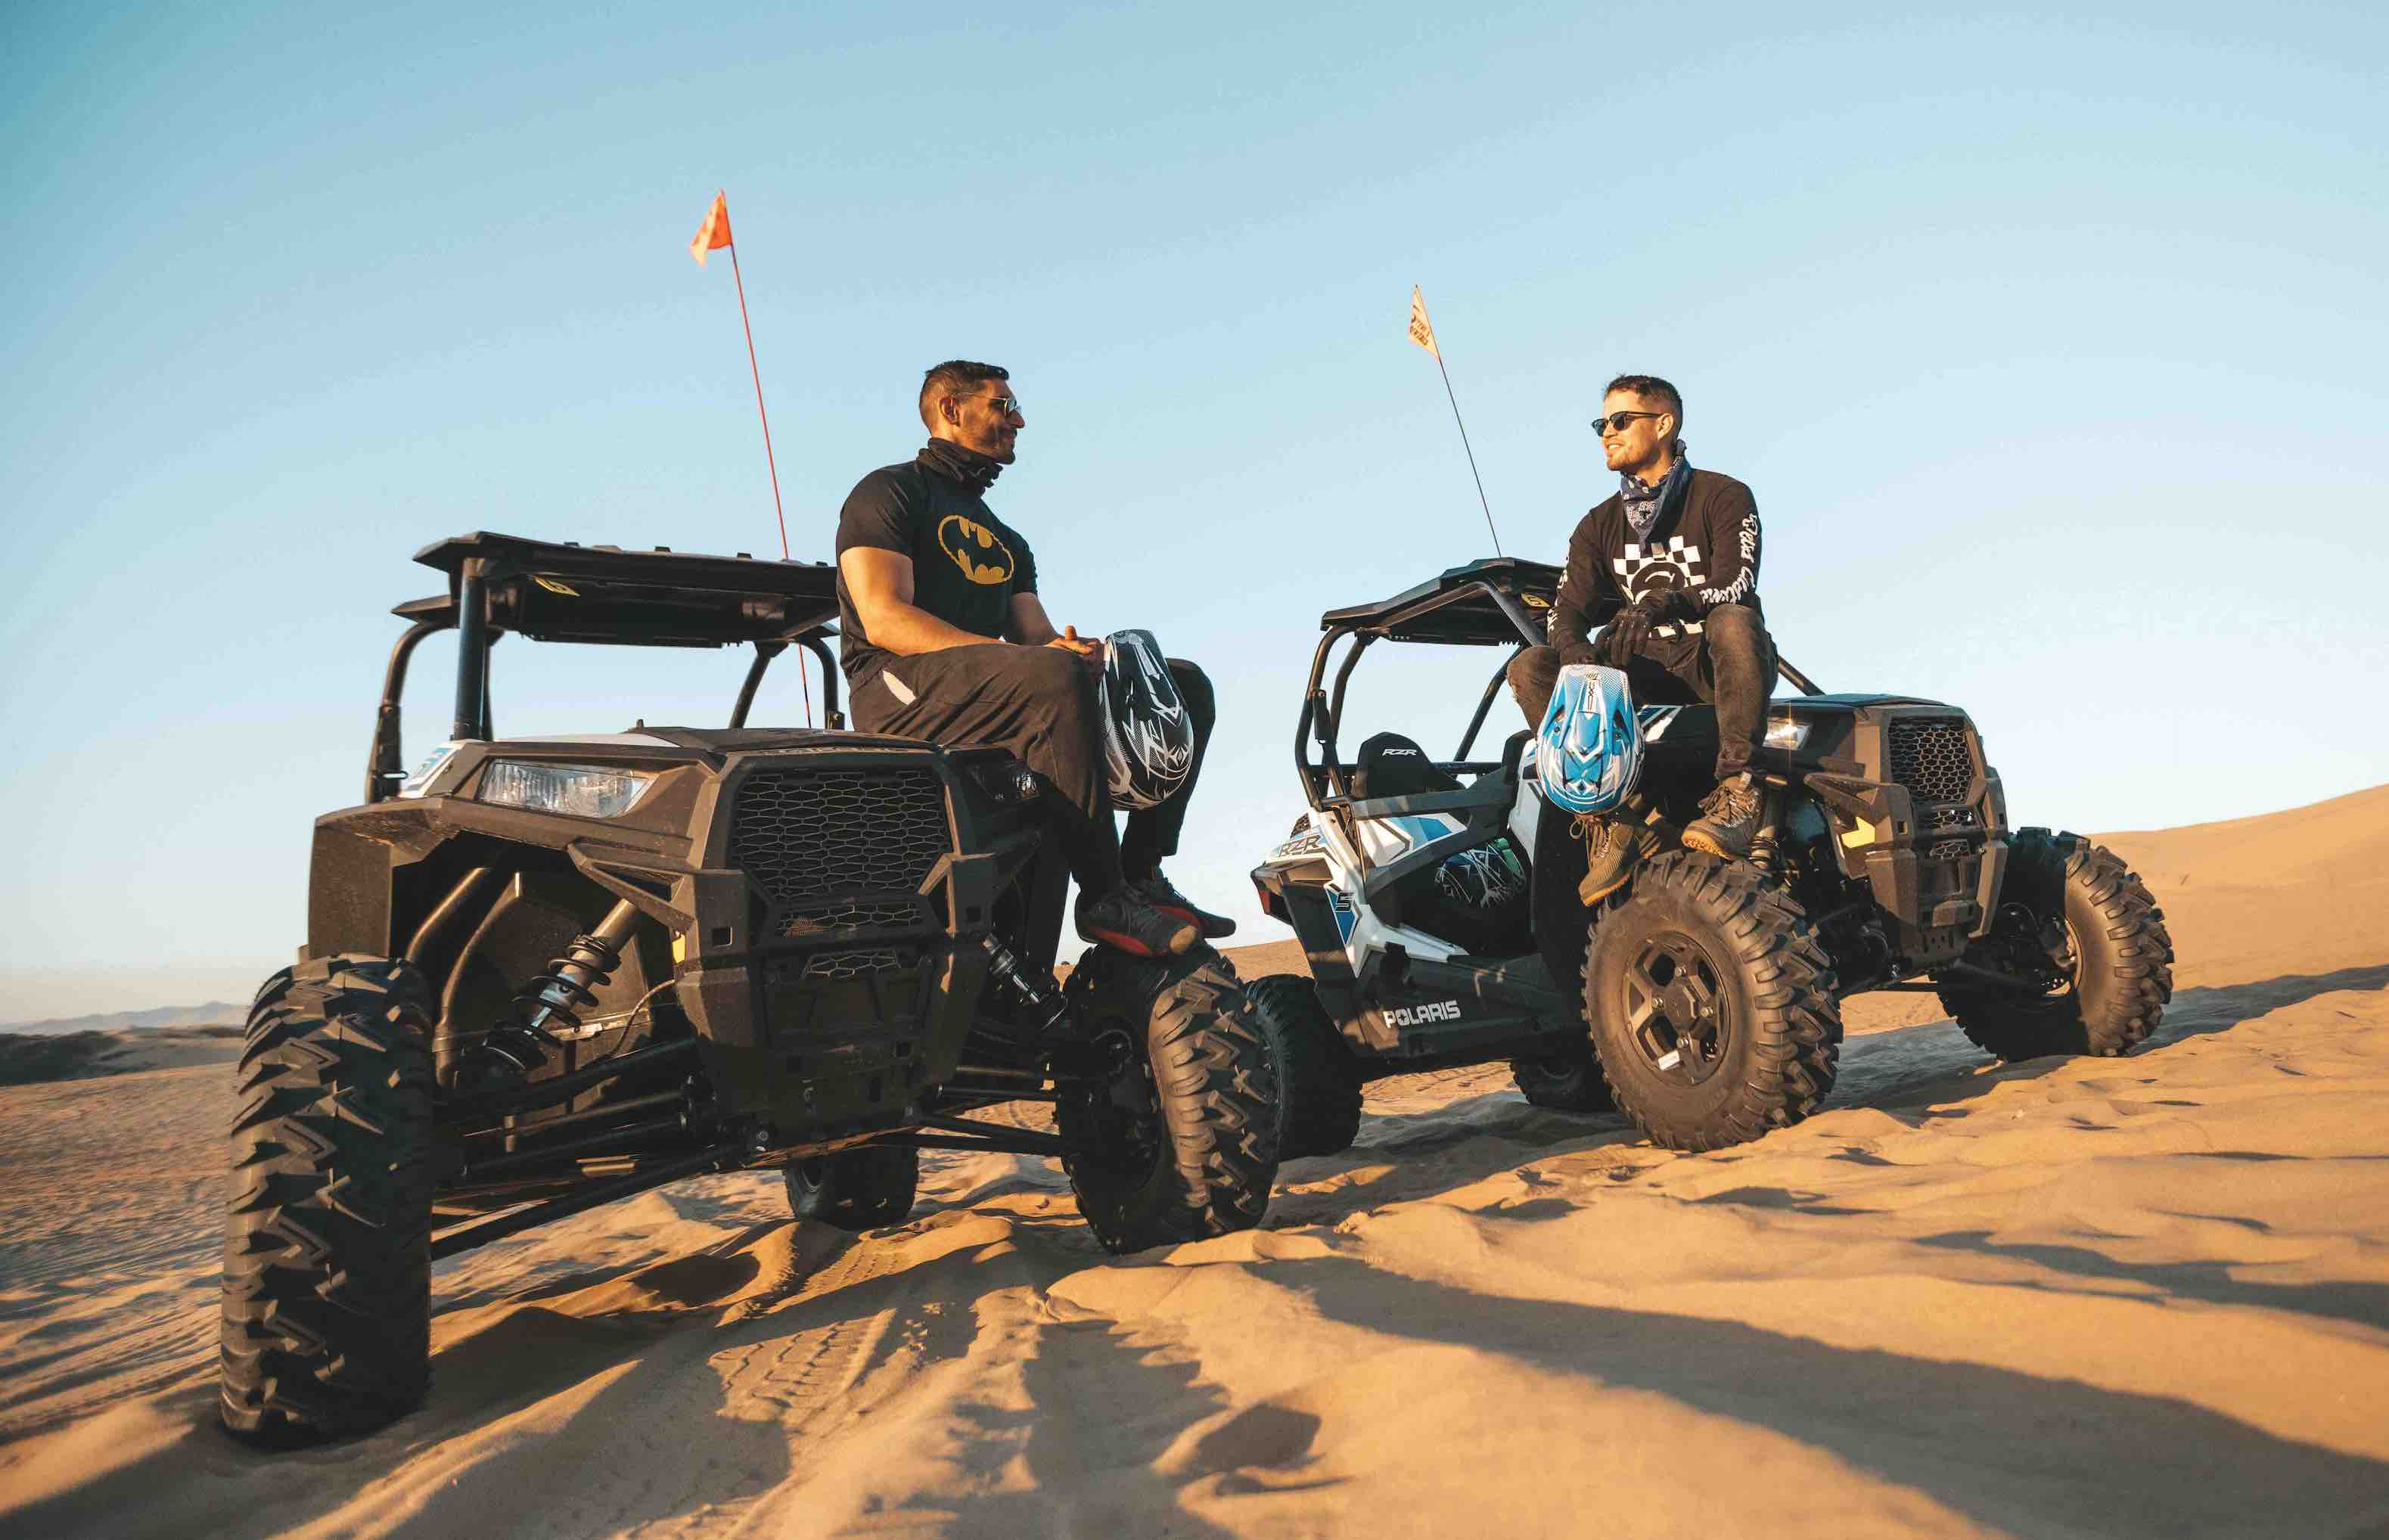 Dune buggies in the desert with 2 men sitting on the hoods.